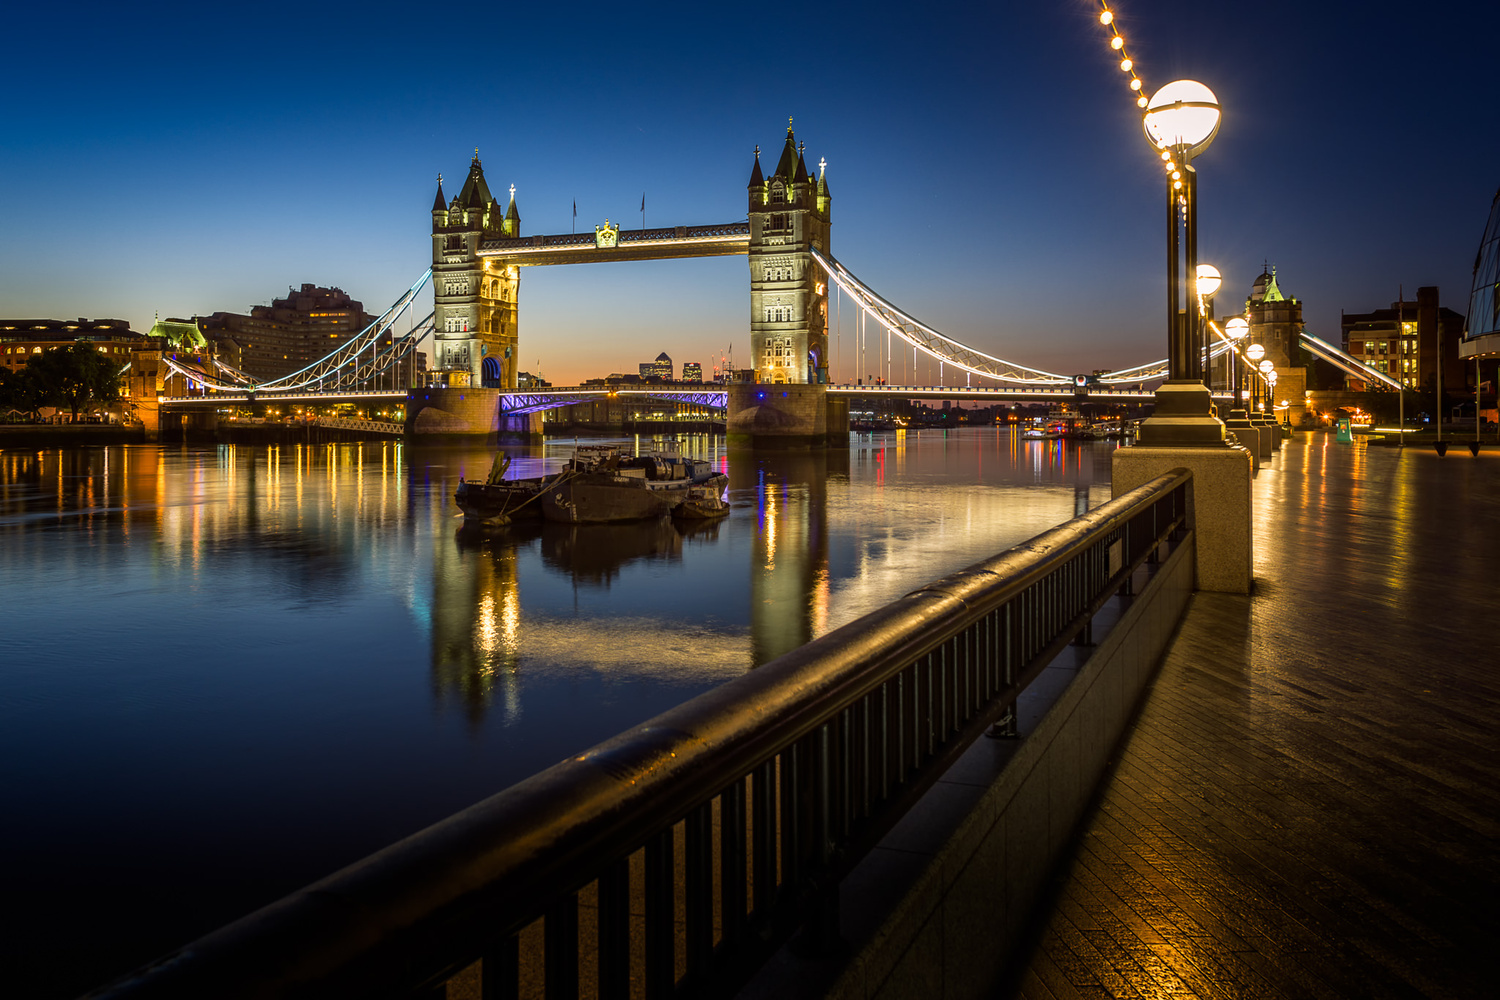 Tower Bridge | London, England by Nico Trinkhaus